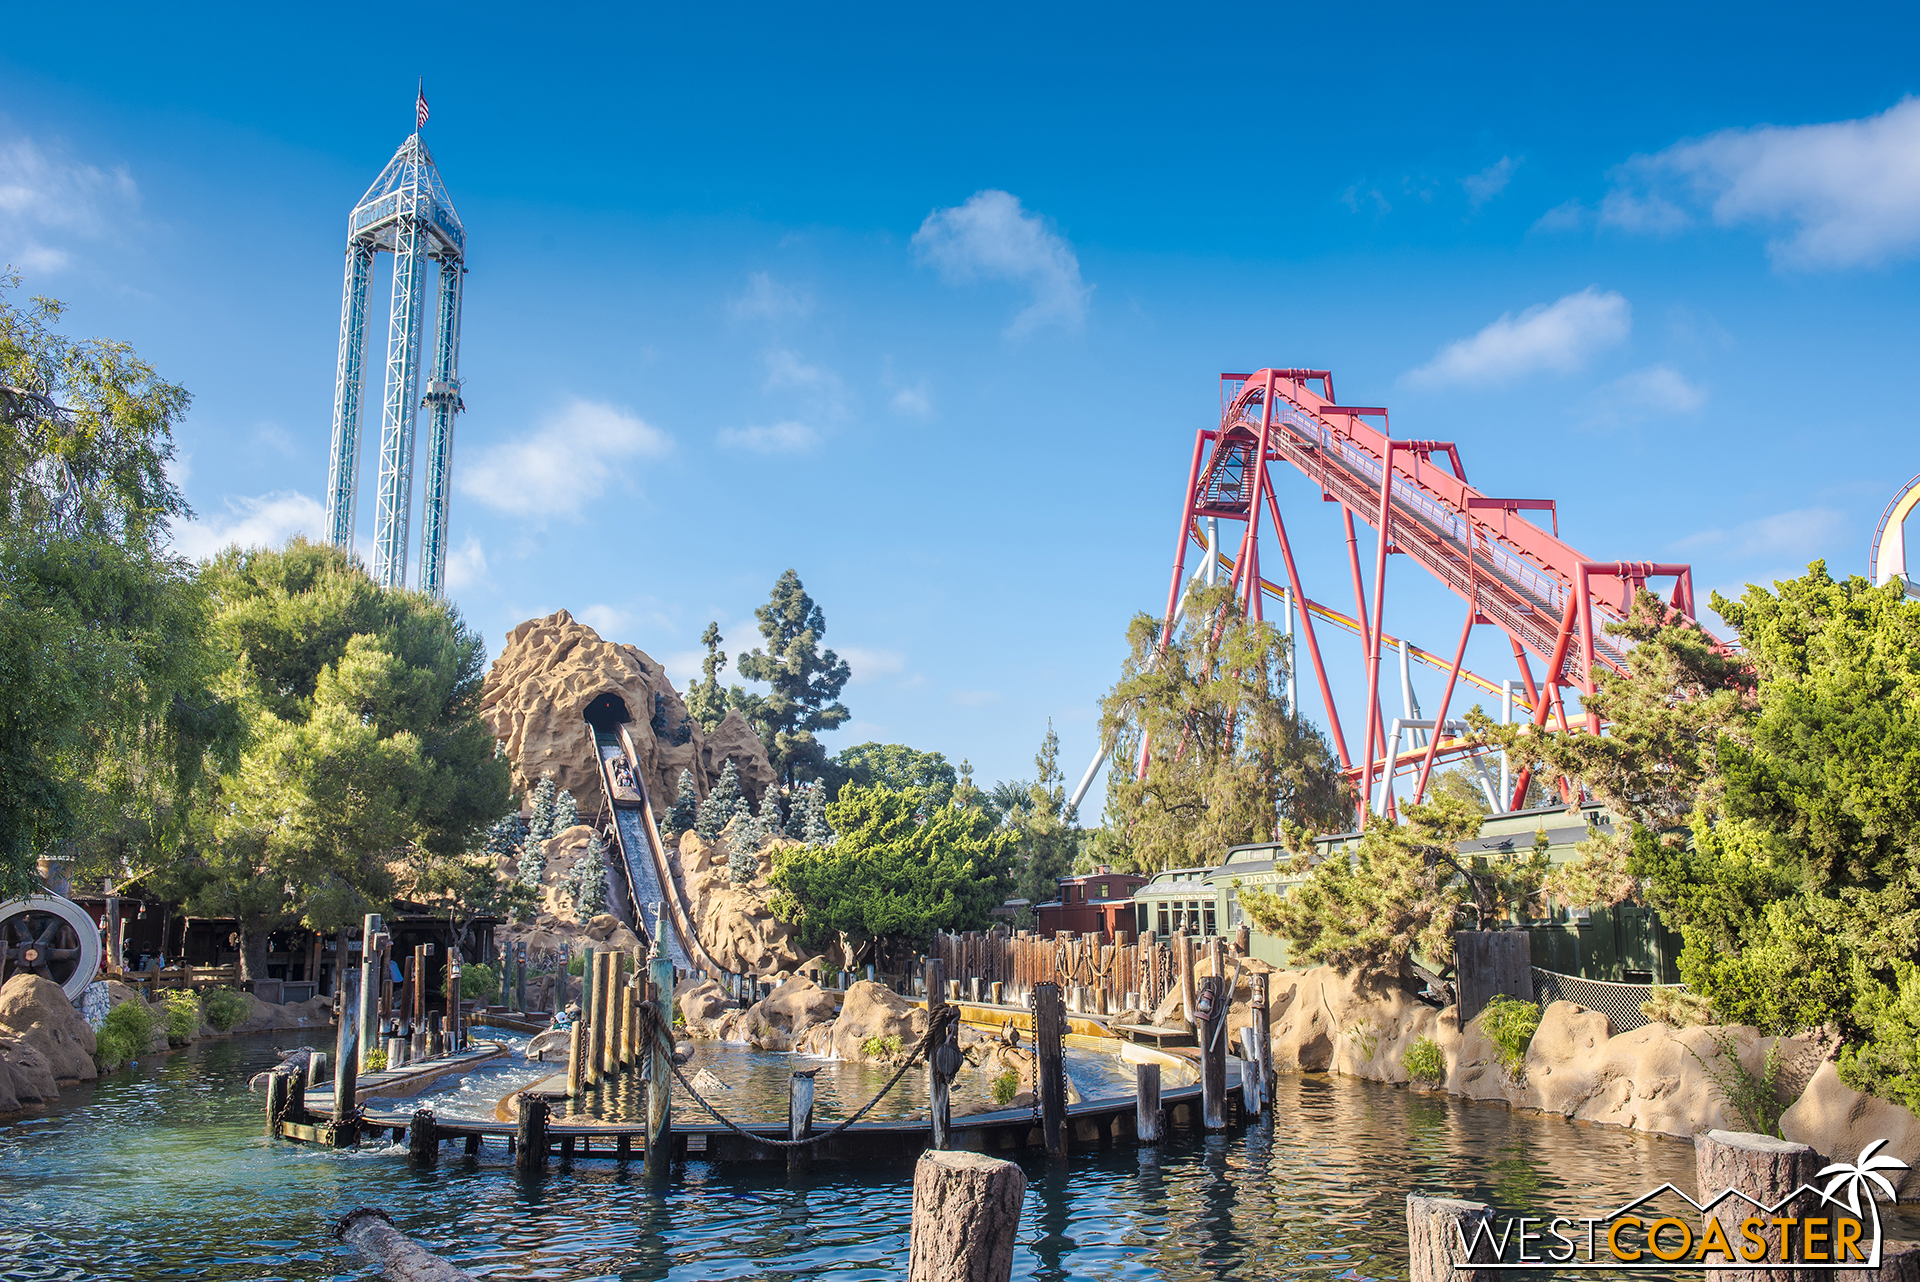 The Log Ride is still thrilling riders after all these decades.